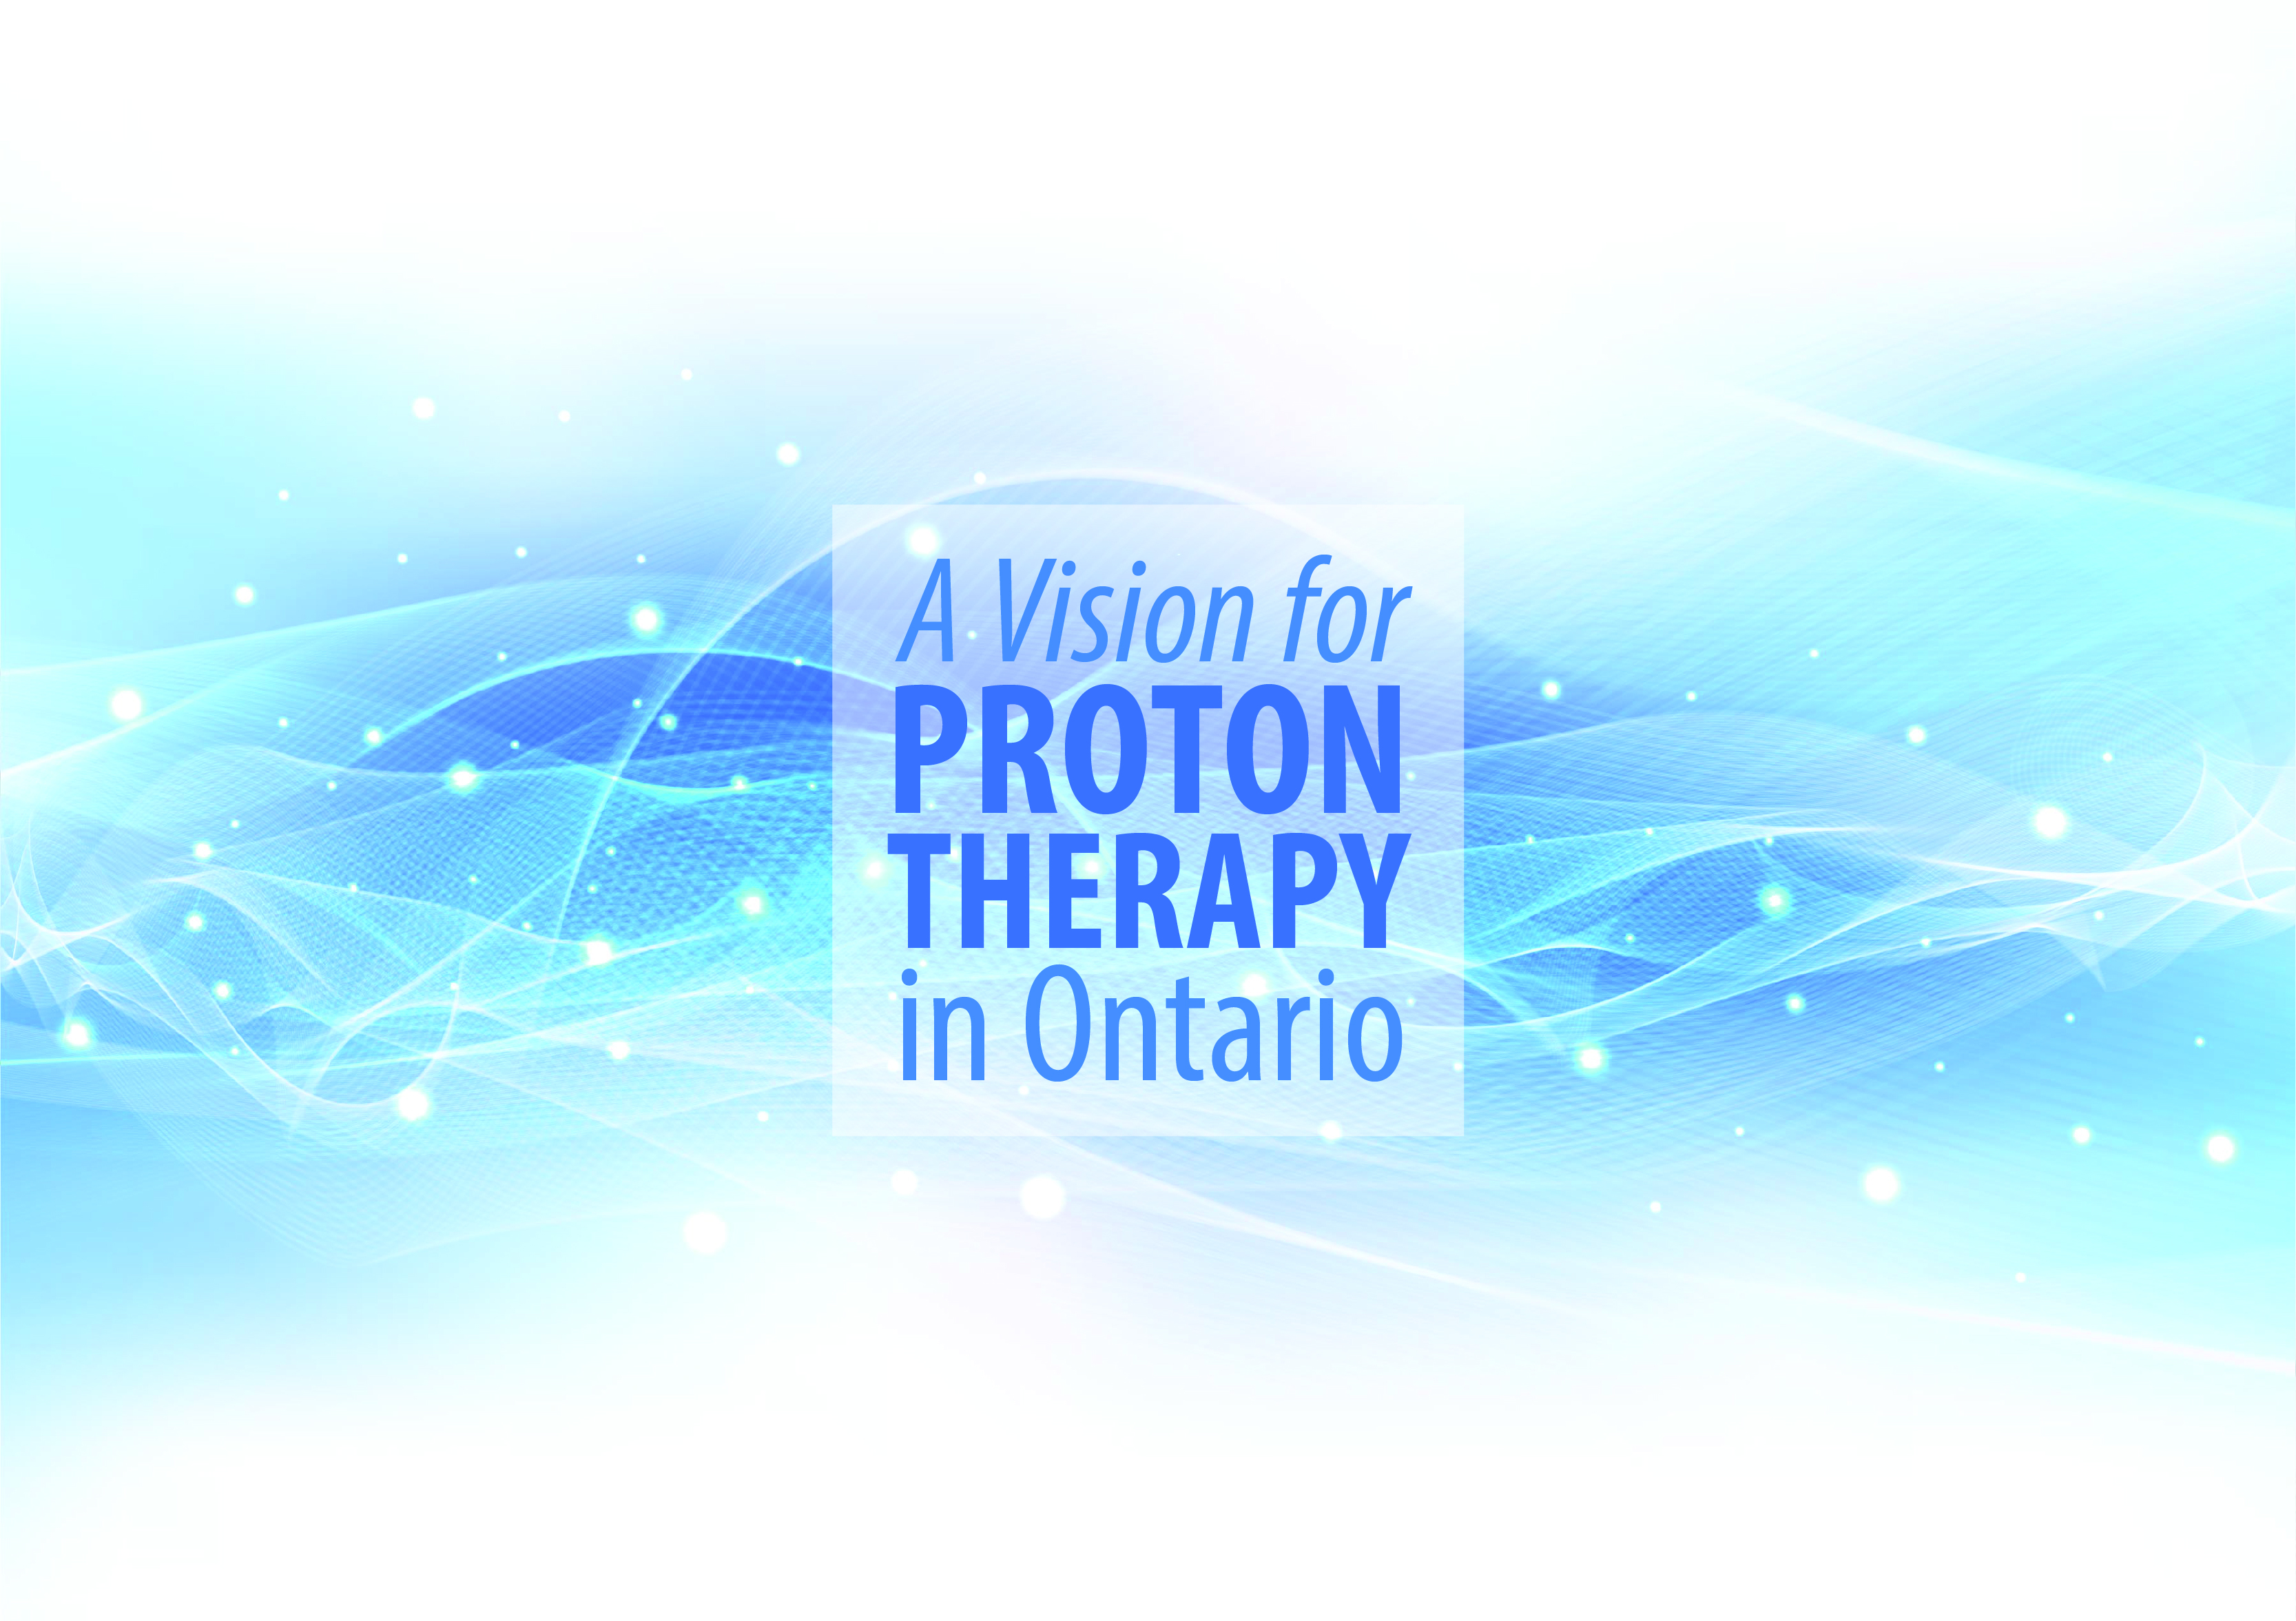 A Vision for Proton Therapy in Ontario   Radiation Oncology